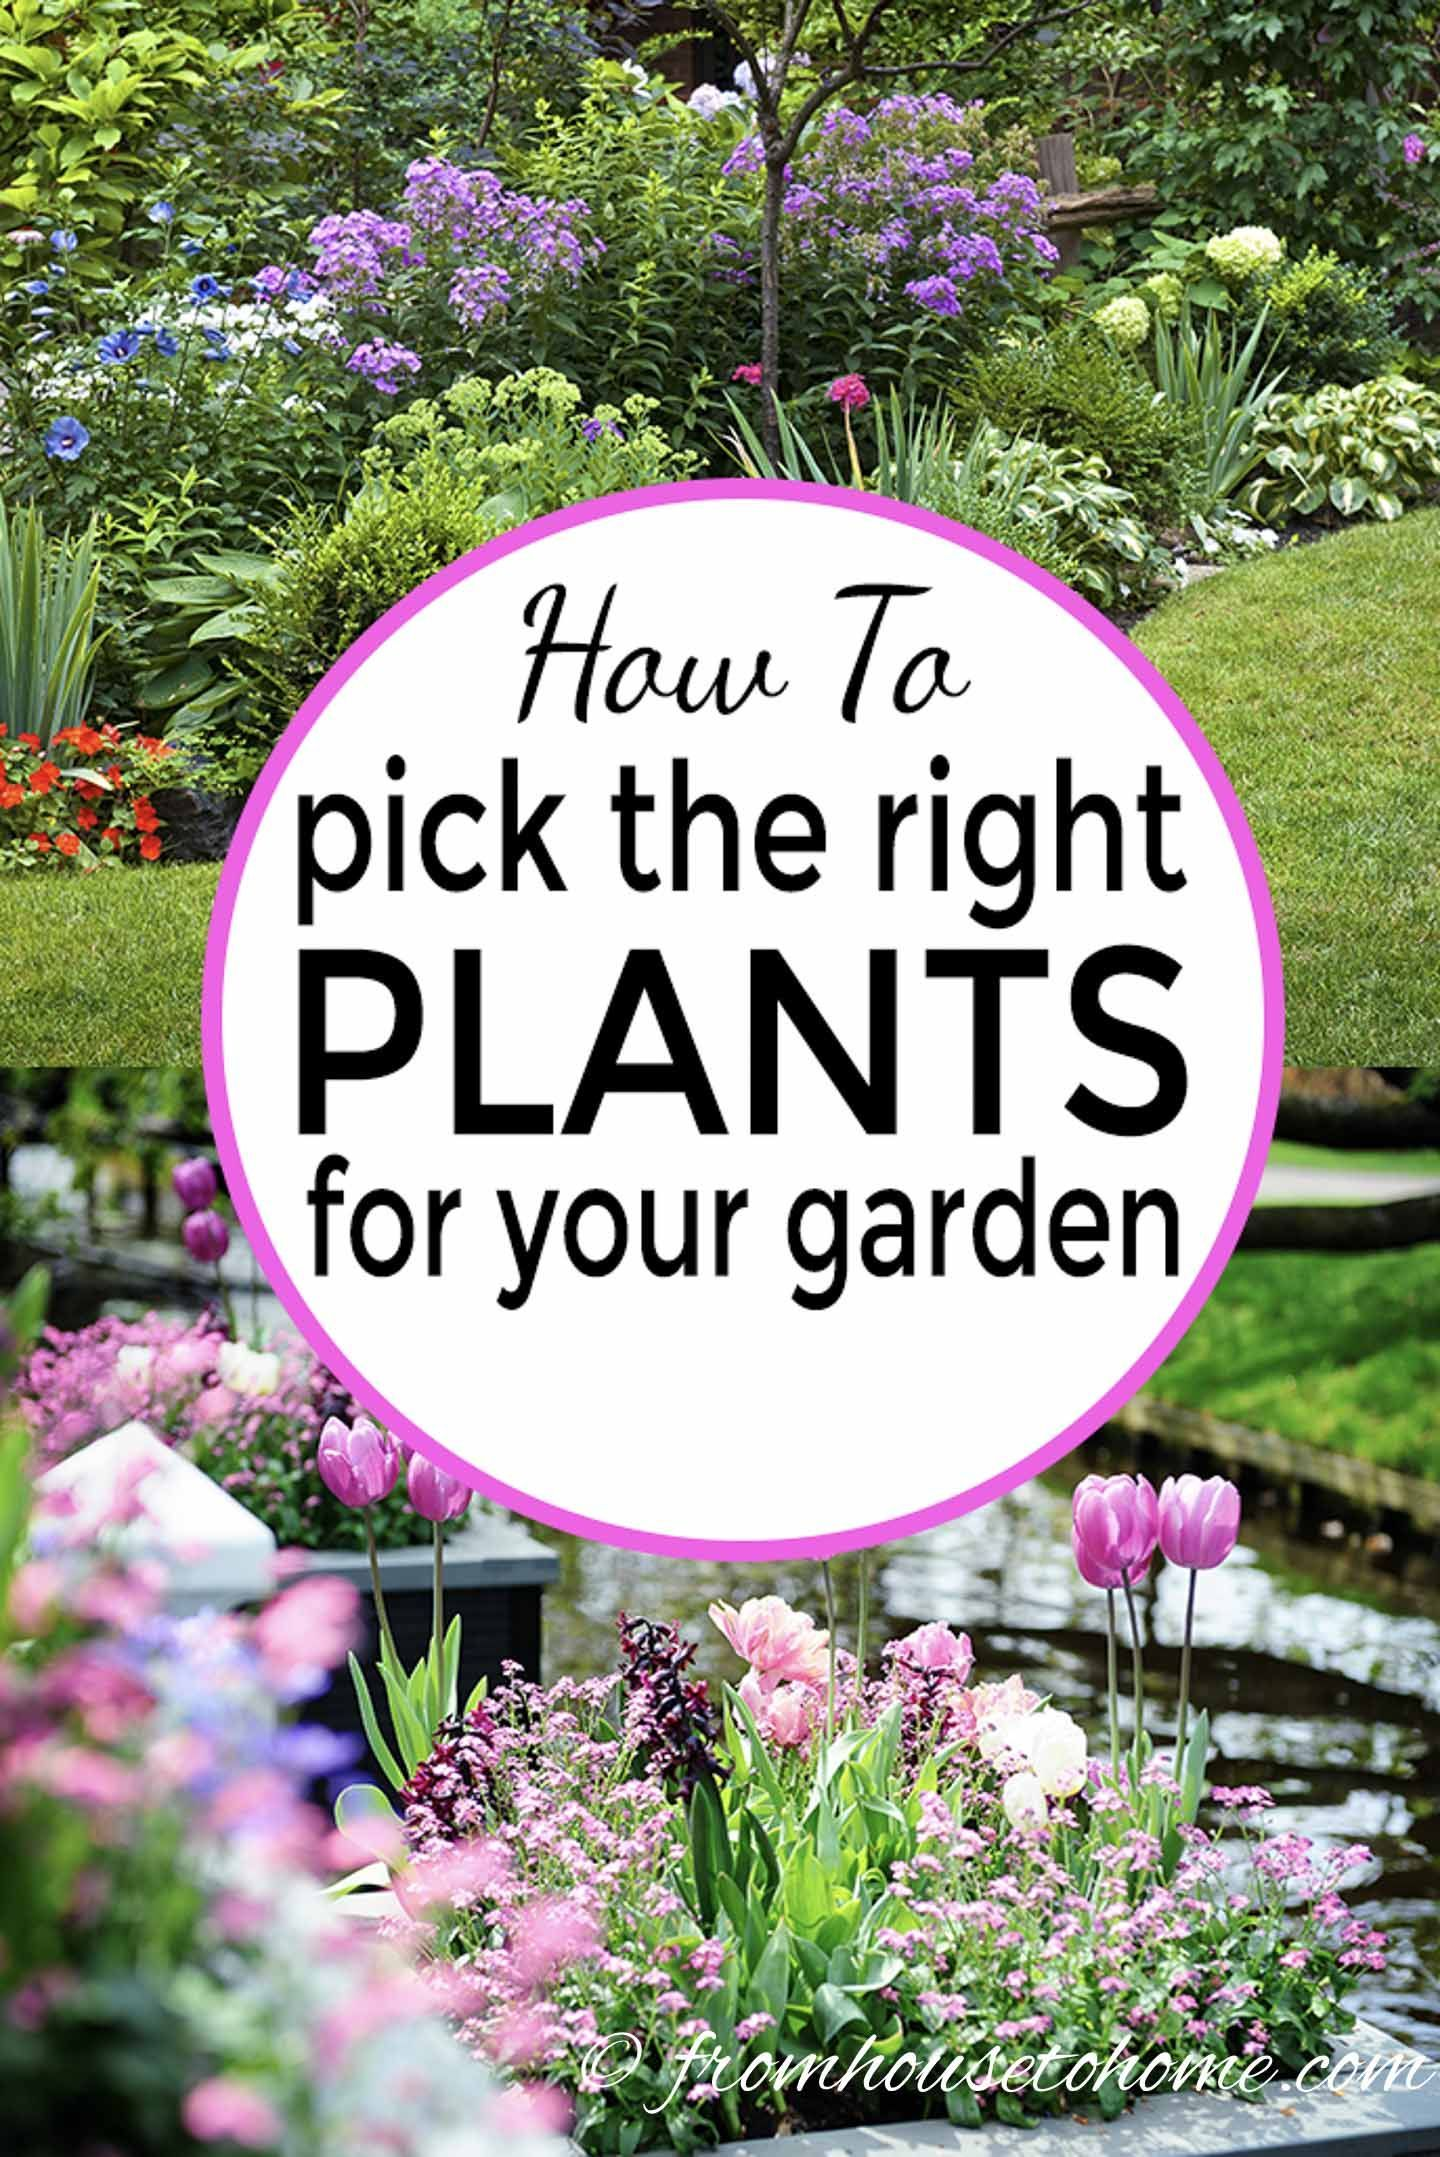 How To Choose Plants For Landscaping Your Garden Landscaping Plants Part Shade Plants Low Maintenance Garden